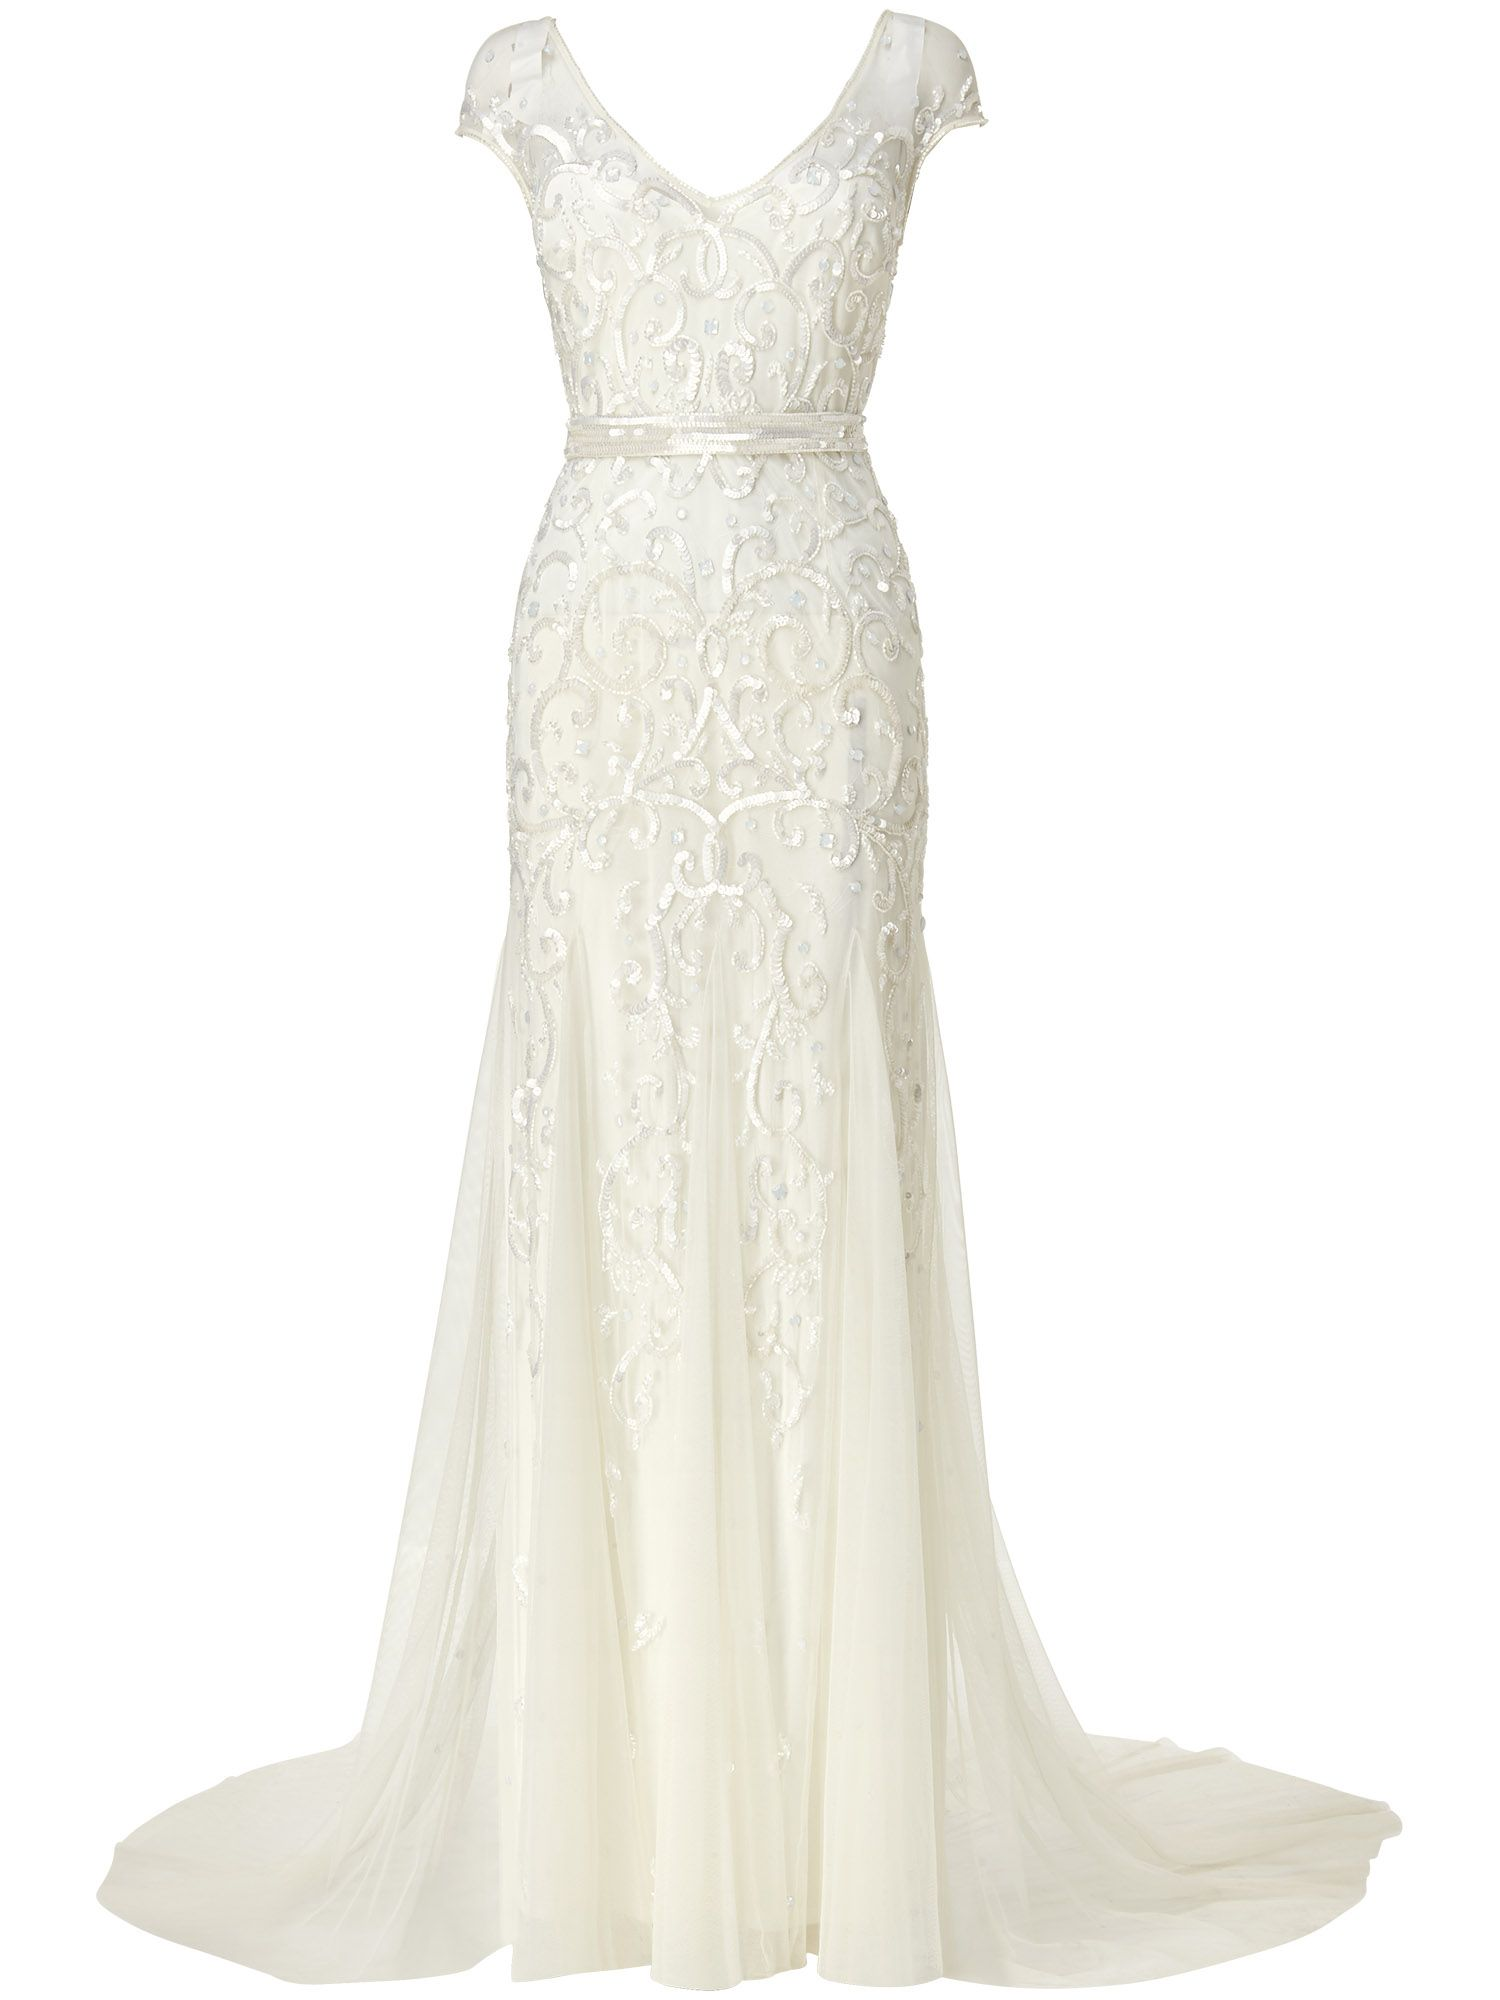 Elbertine bridal dress